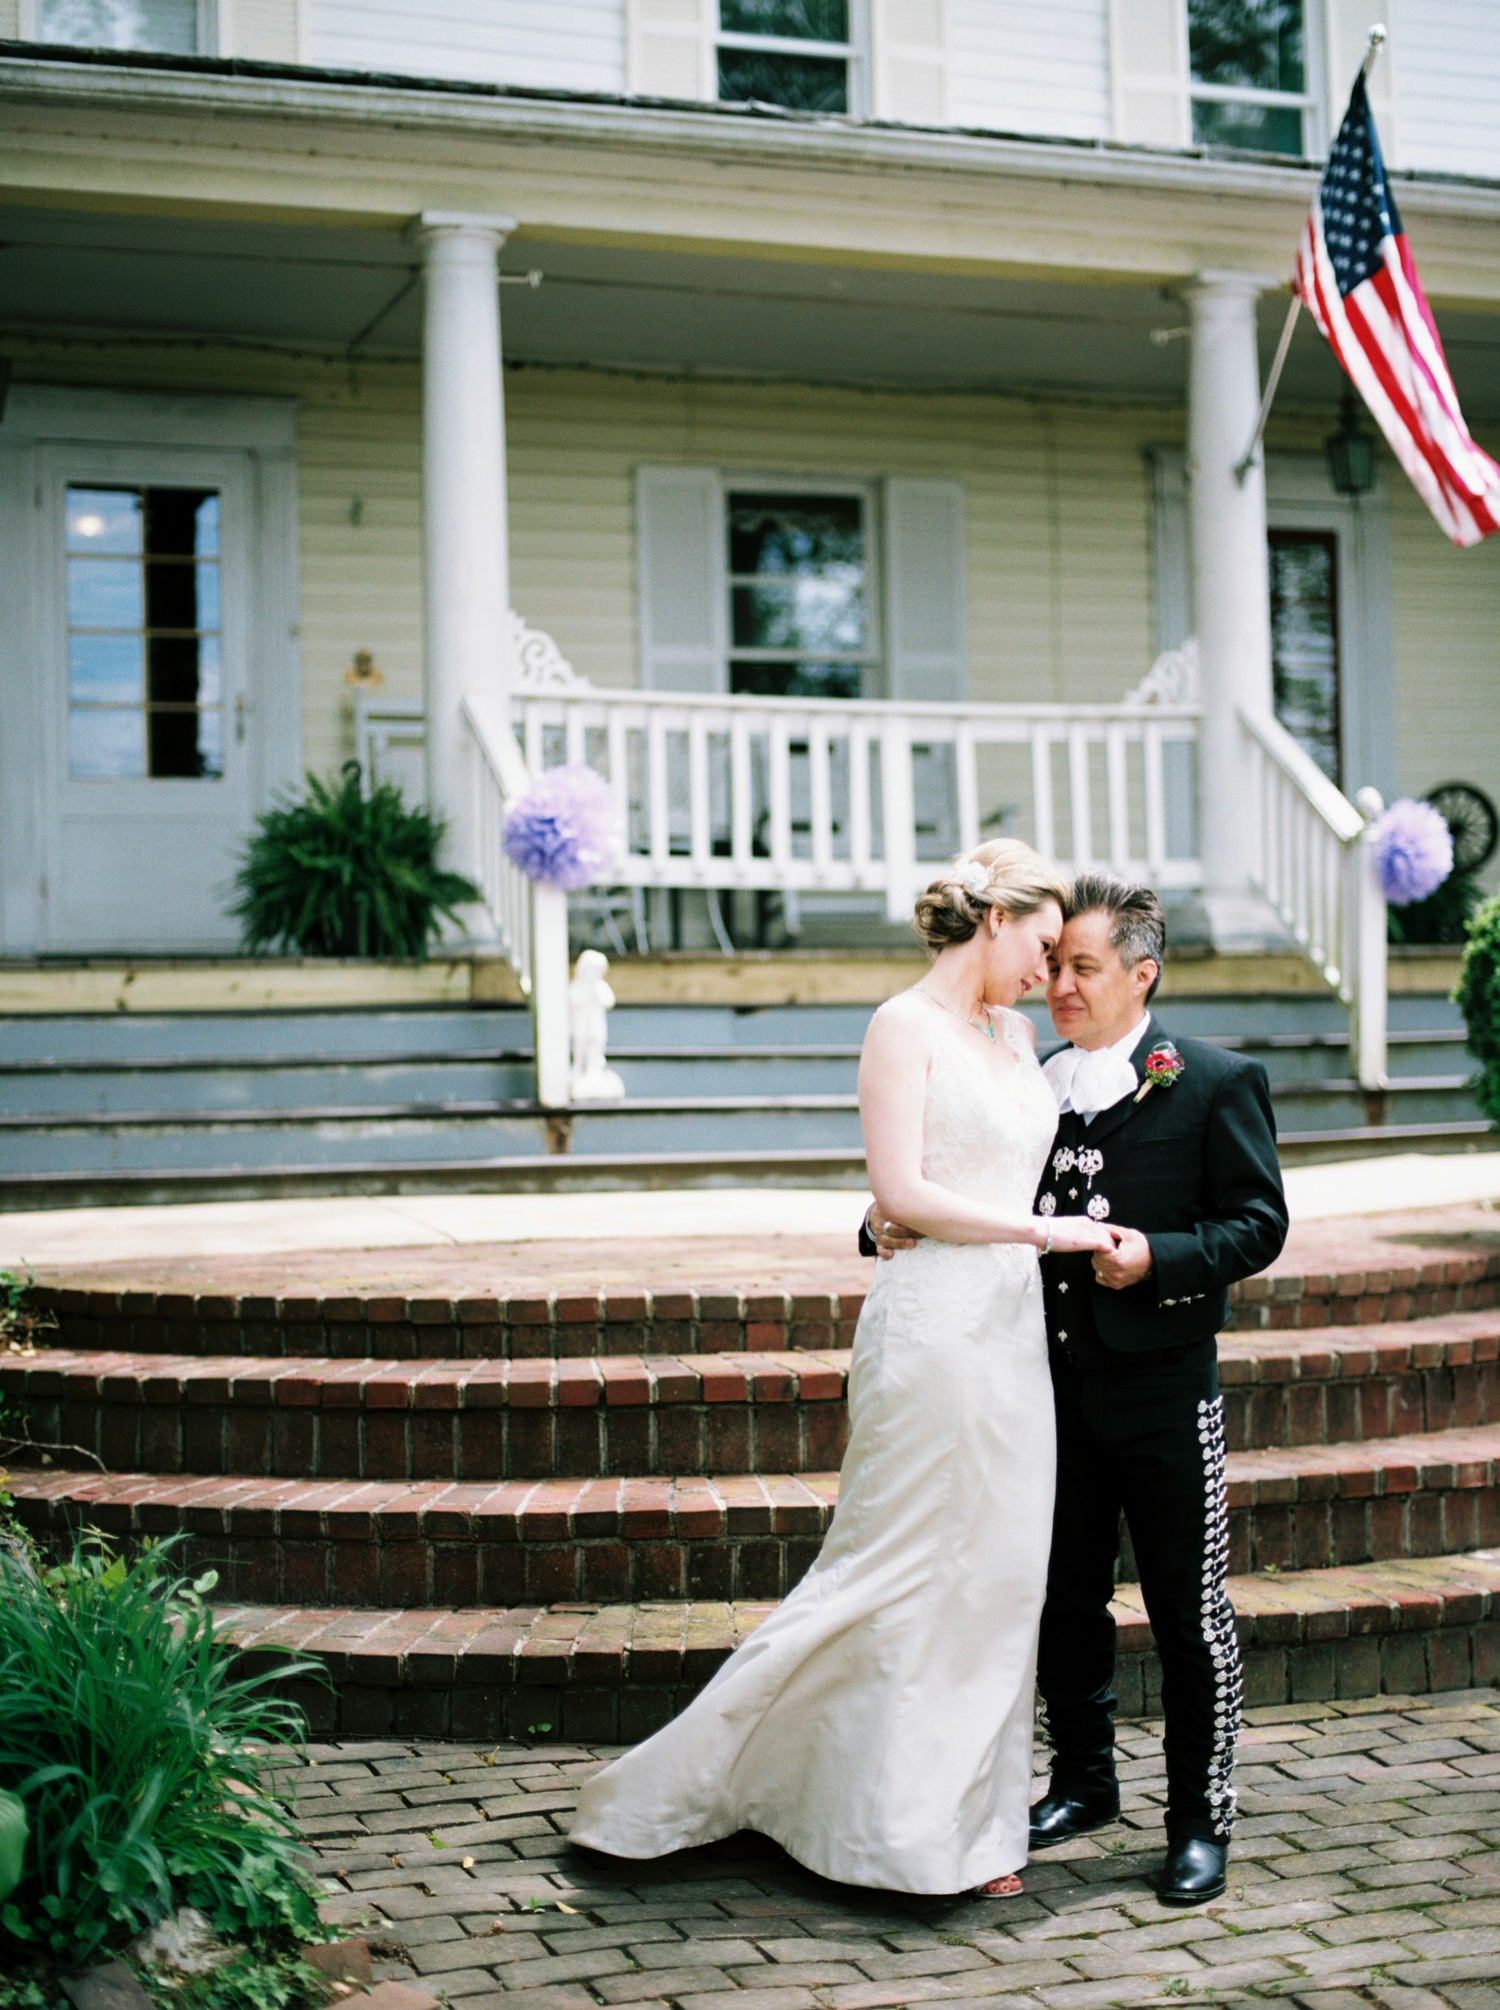 season magnolia manor wedding elisa ignacio czar goss photo 3.jpg